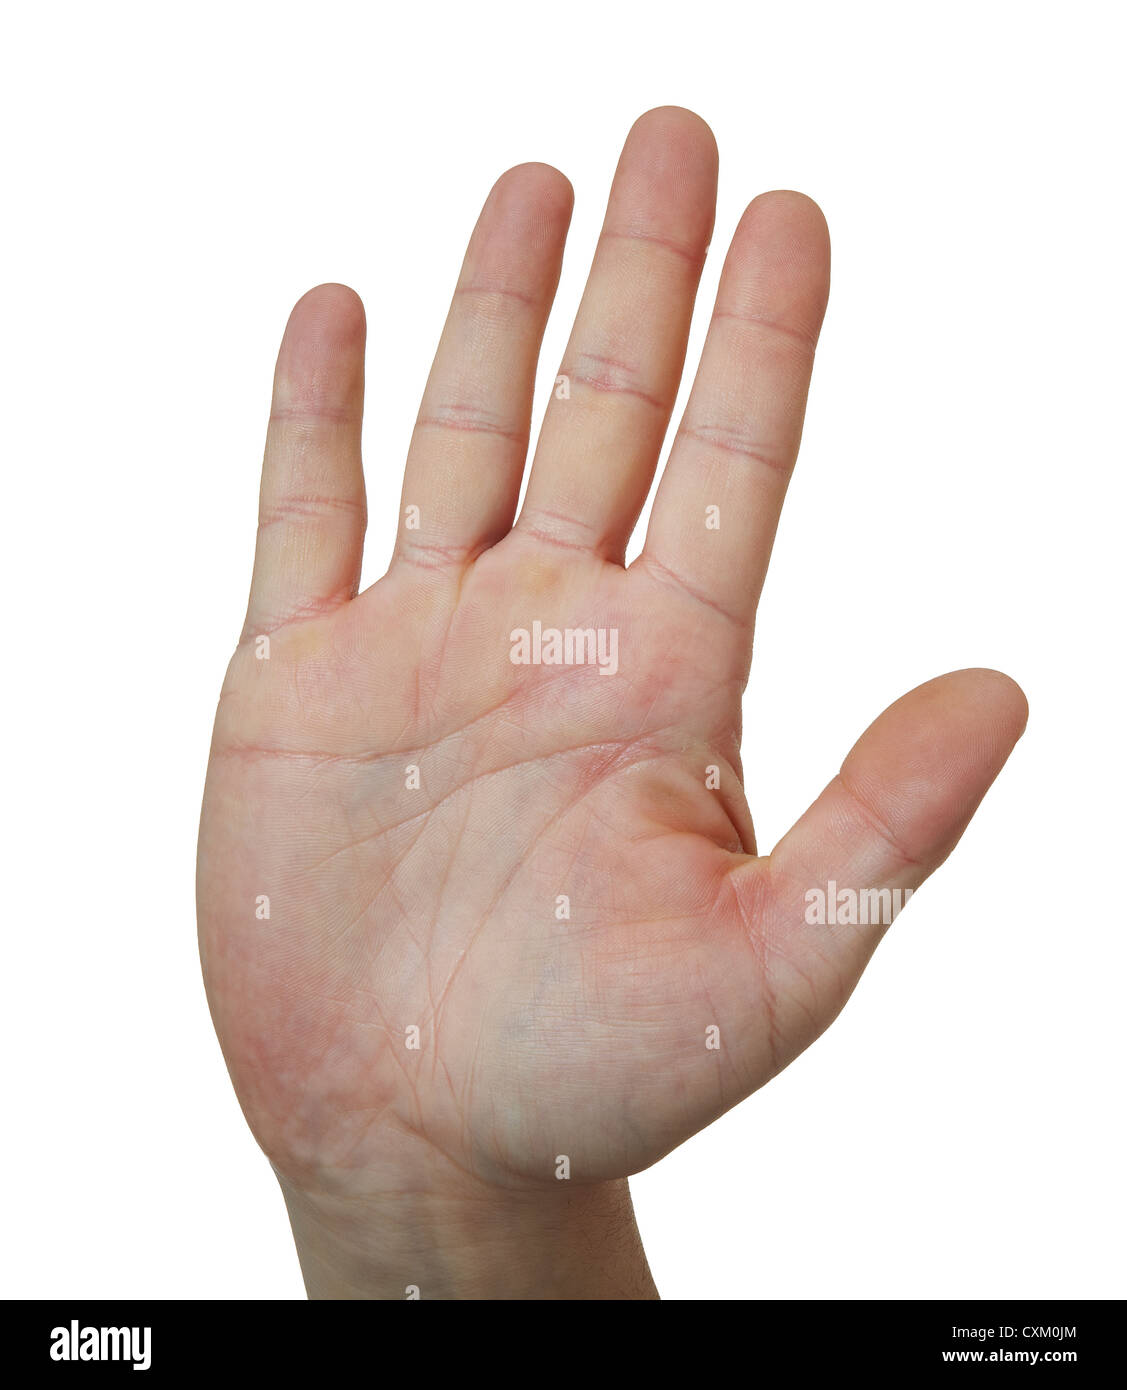 Hand Stop Not Man Not Child Stock Photos Hand Stop Not Man Not